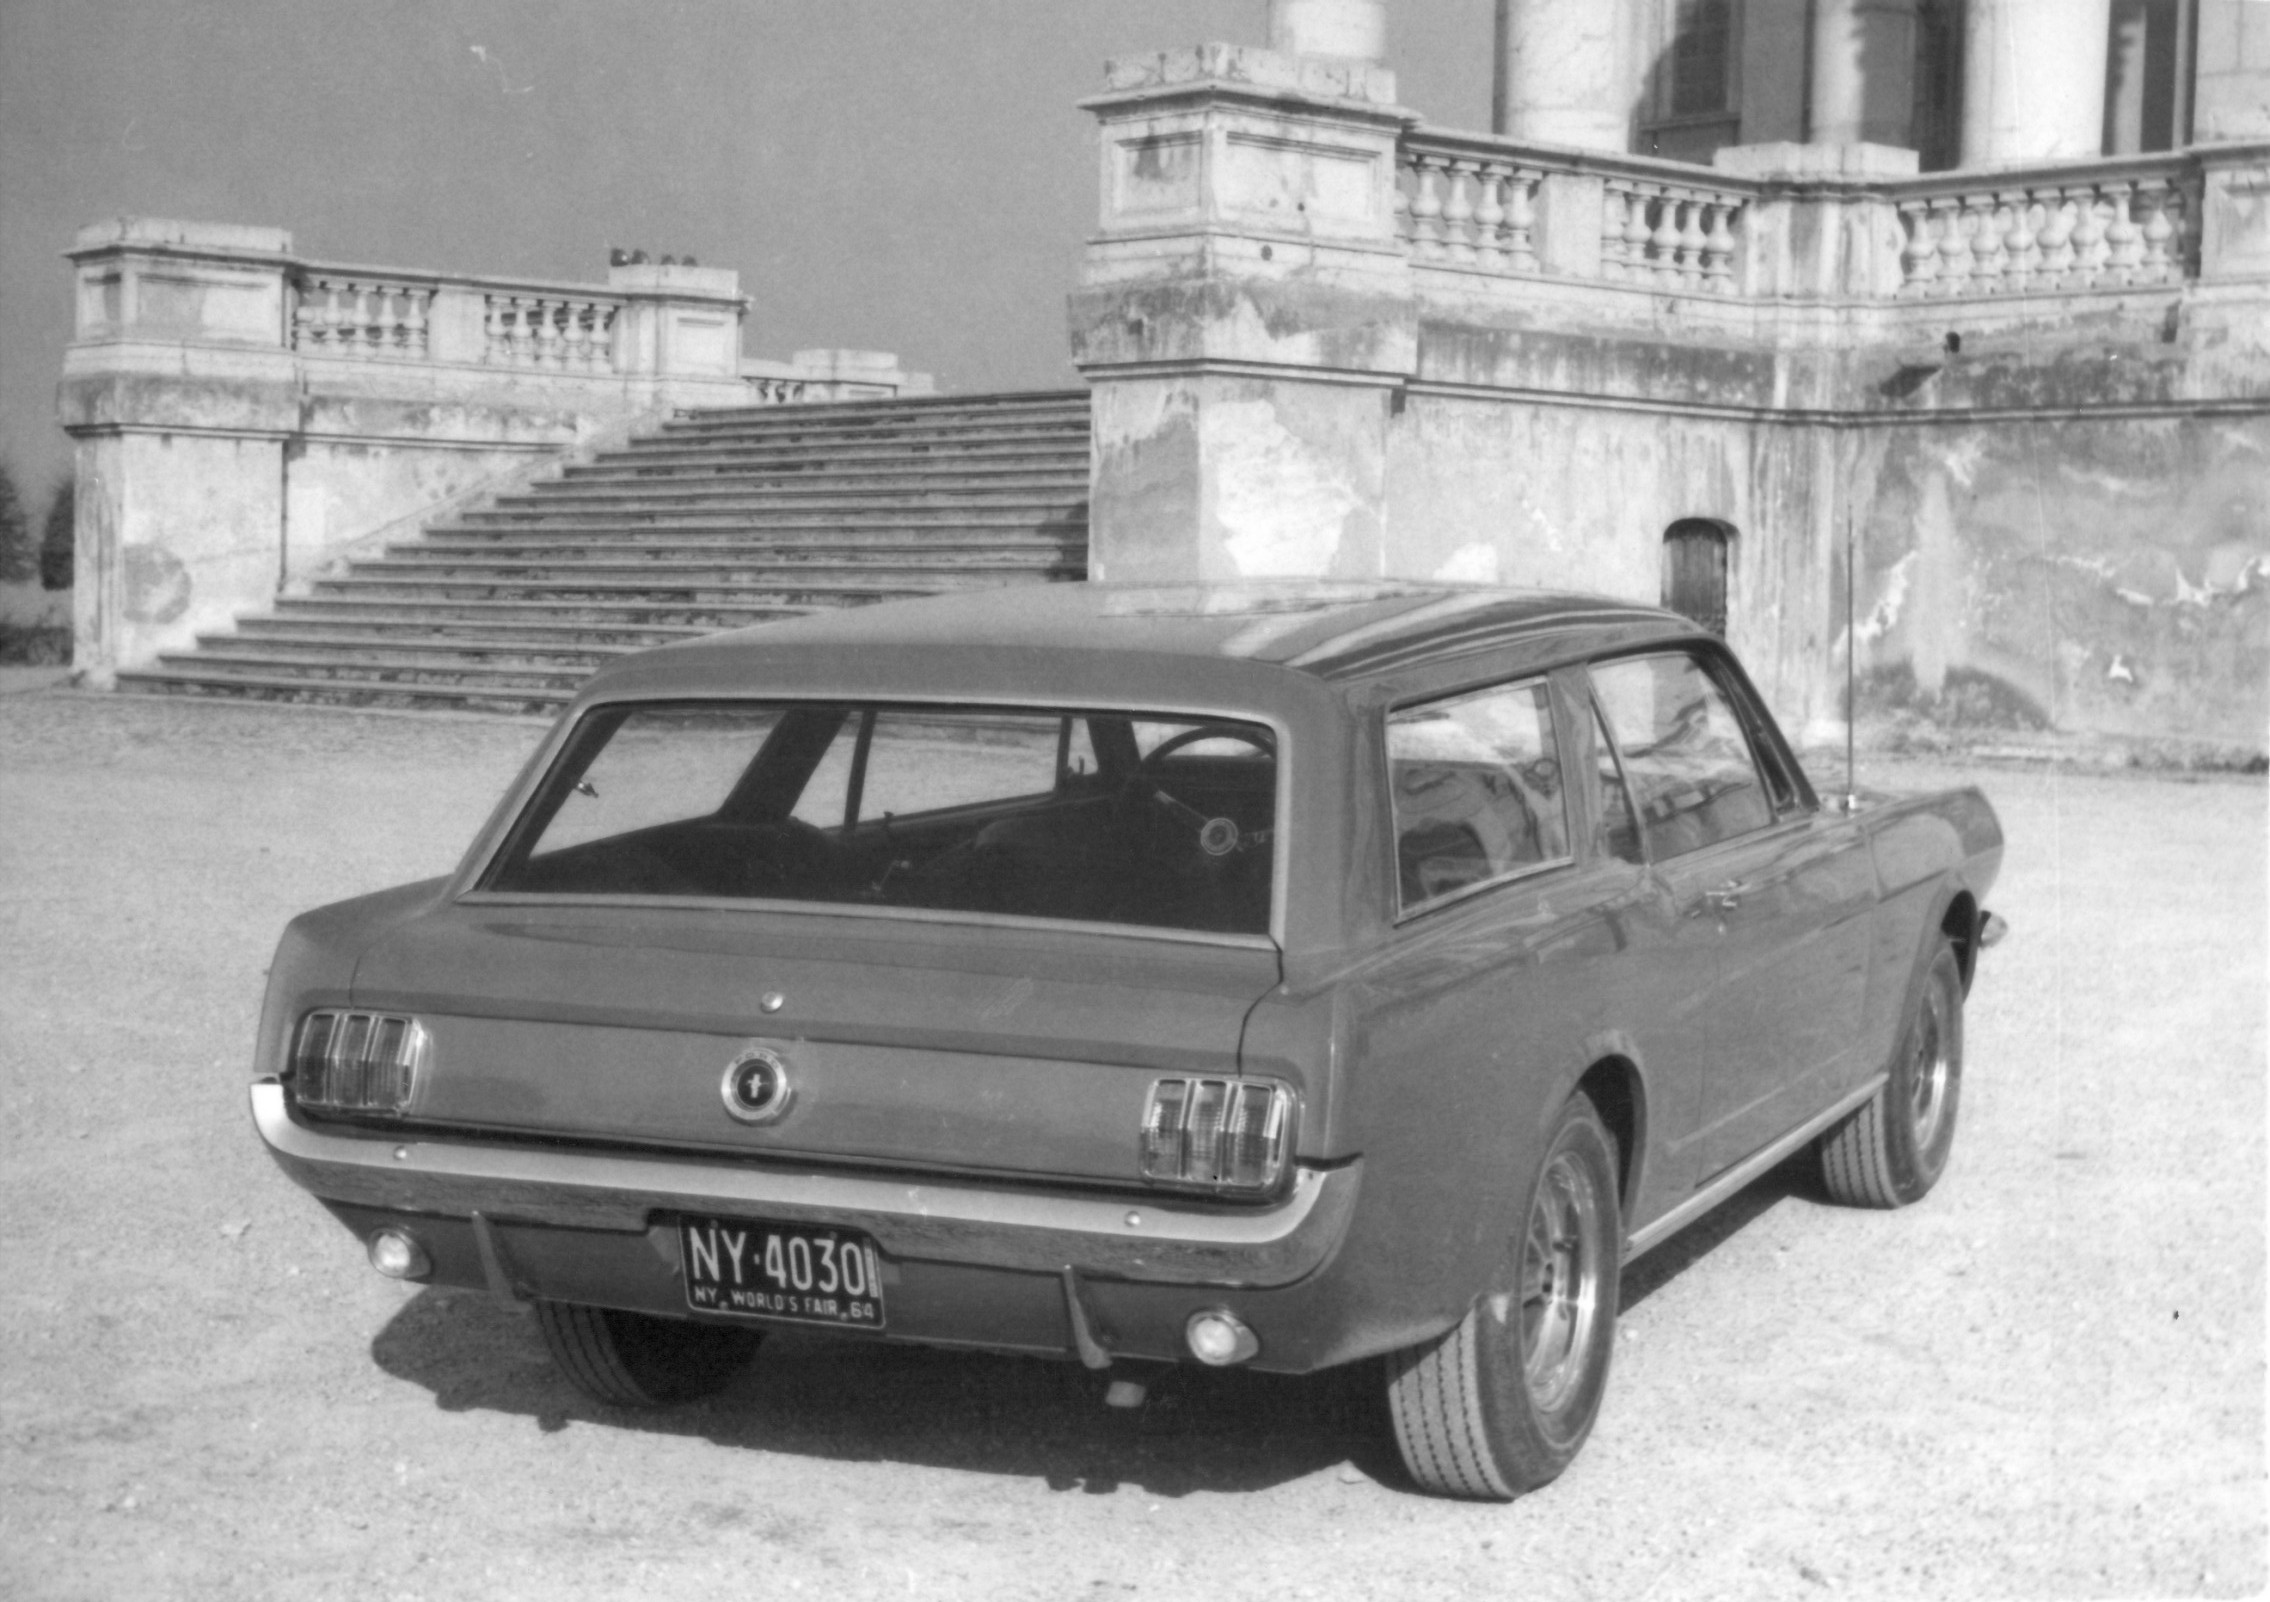 The Cumberford Mustang wagon was originally white, but he asked Construzione Automobili Intermeccanica to give it a red paint job.